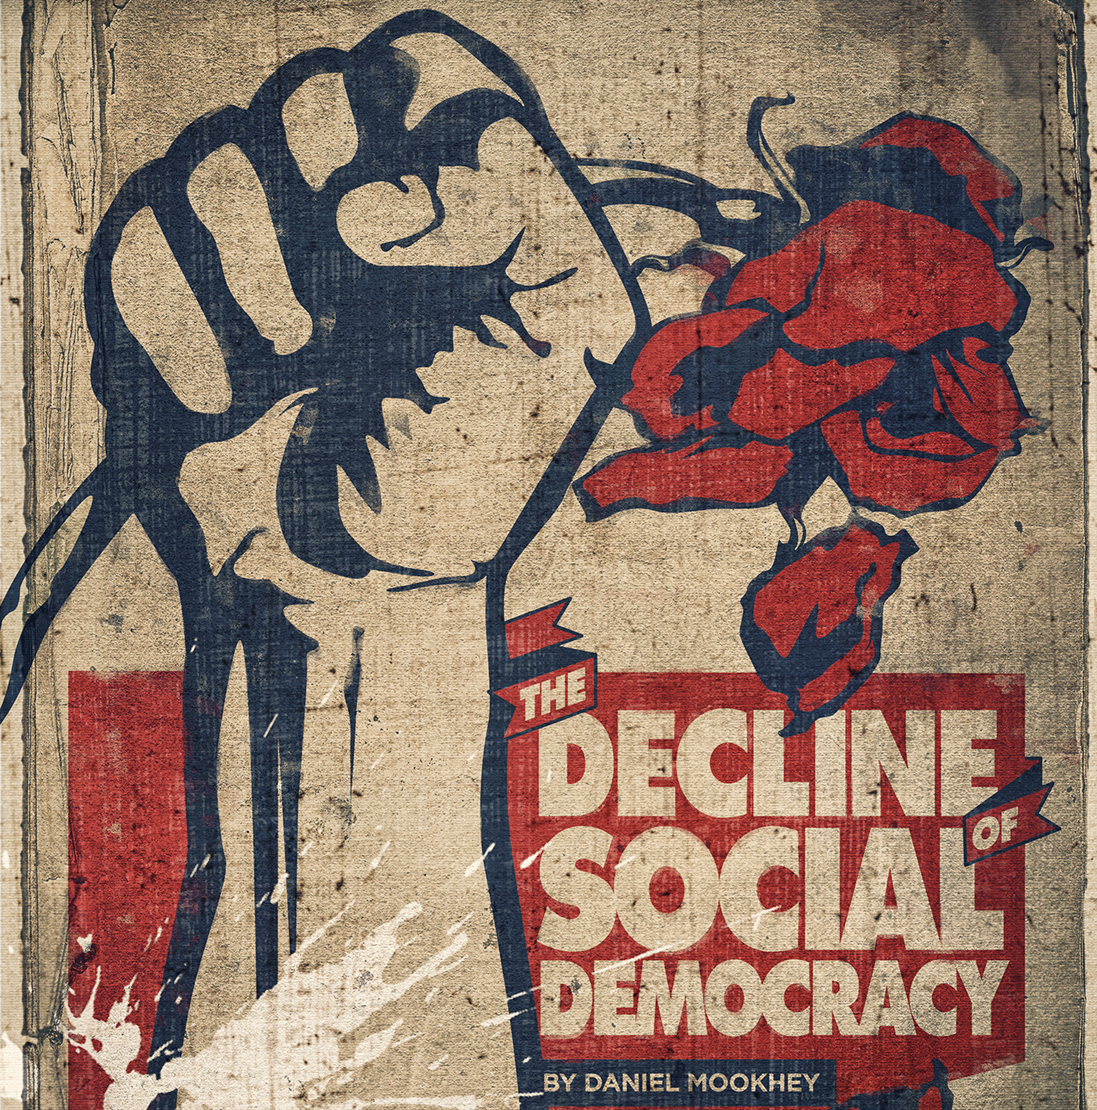 socialism vs democracy Socialism is a loaded word in the us, but social security, one of the nation's most popular benefit programs, is wholly government-run insights pros and cons of capitalist vs socialist economies.